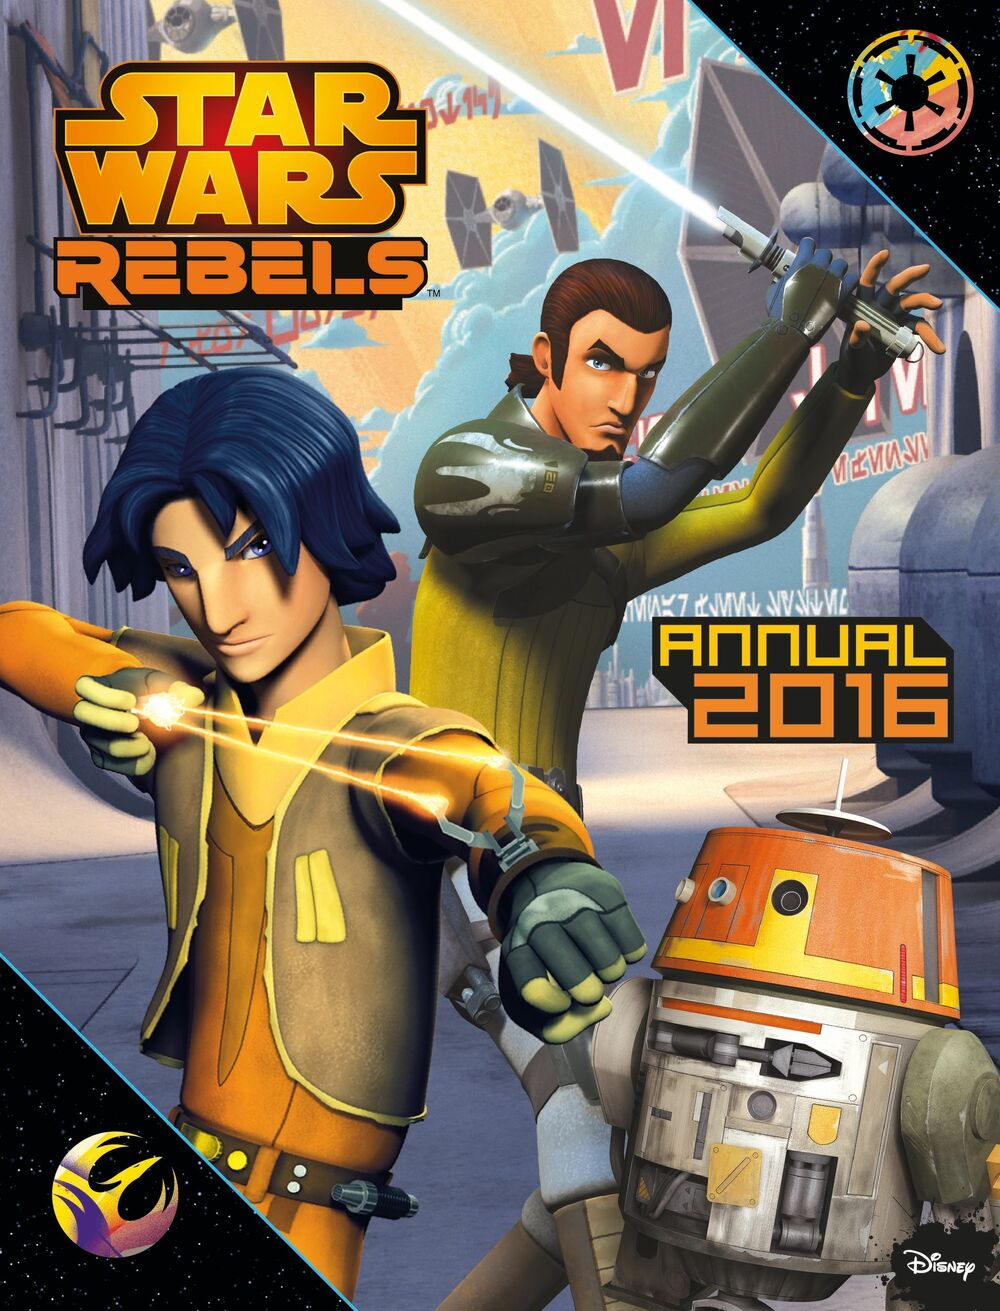 Star Wars Rebels Annual 2016